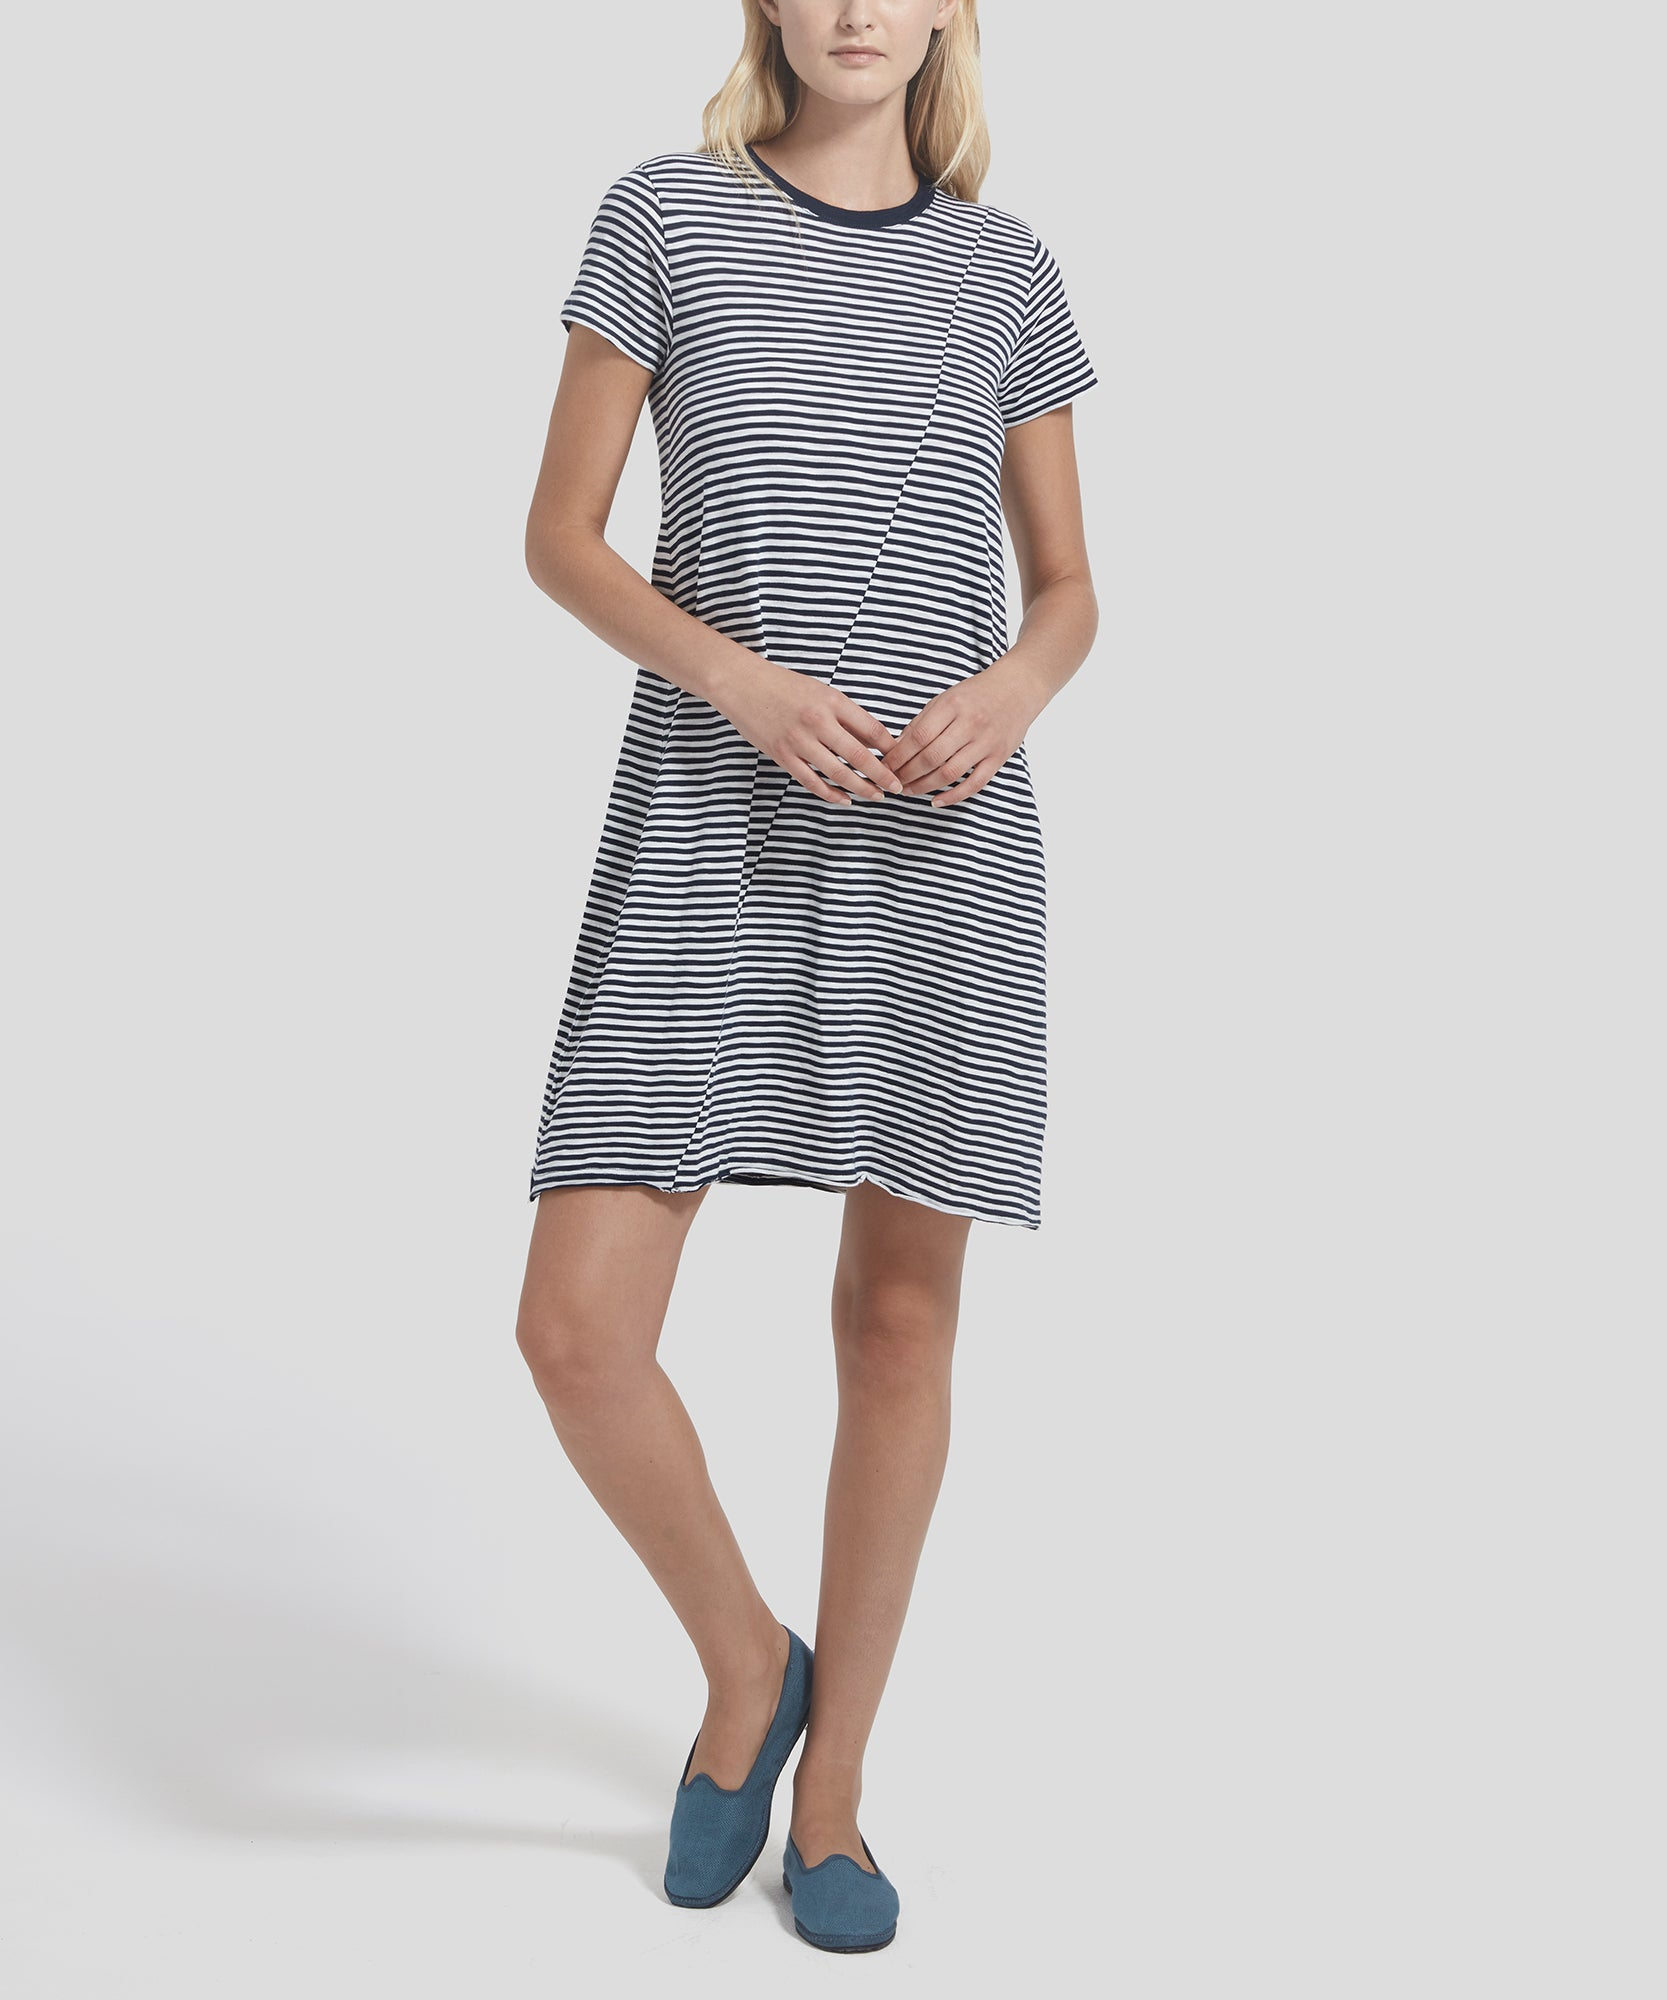 ATM Striped Jersey Short Sleeve Dress